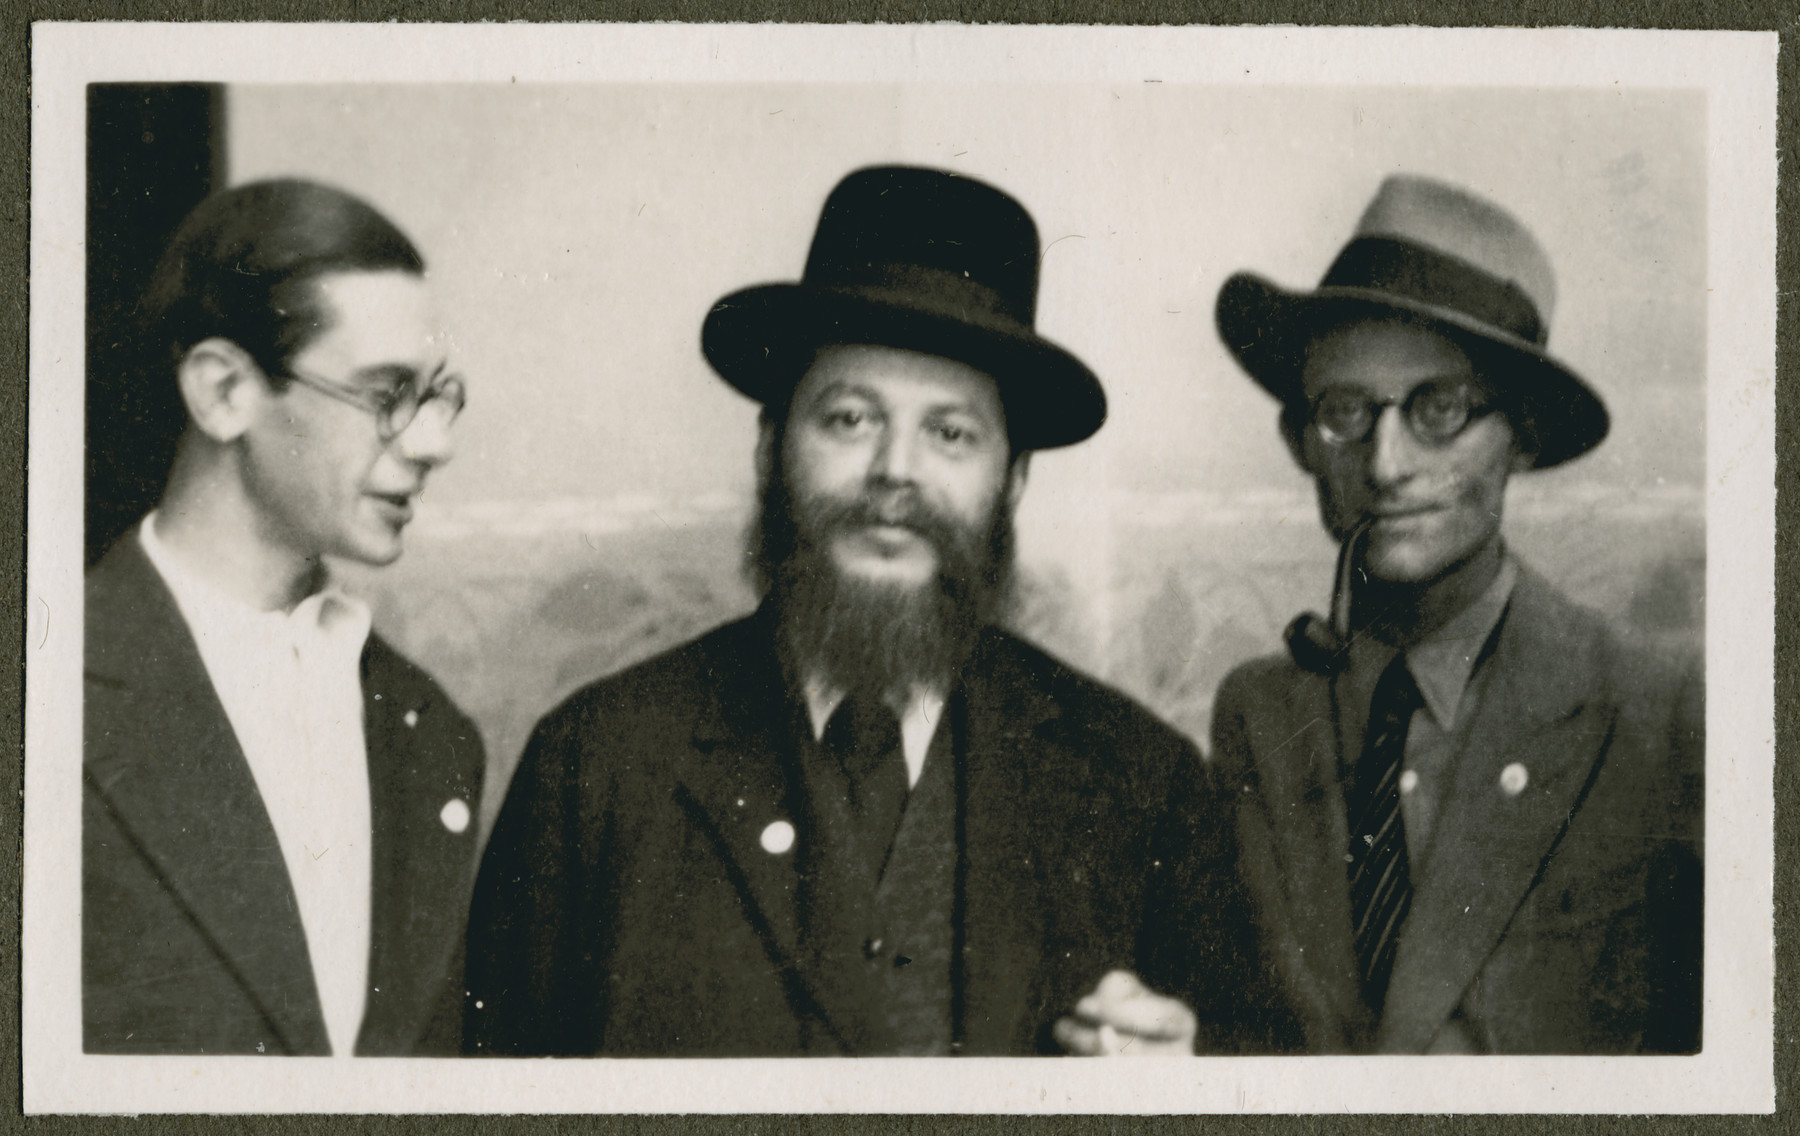 Close-up portrait of three men probably during the 18th Zionist Congress.